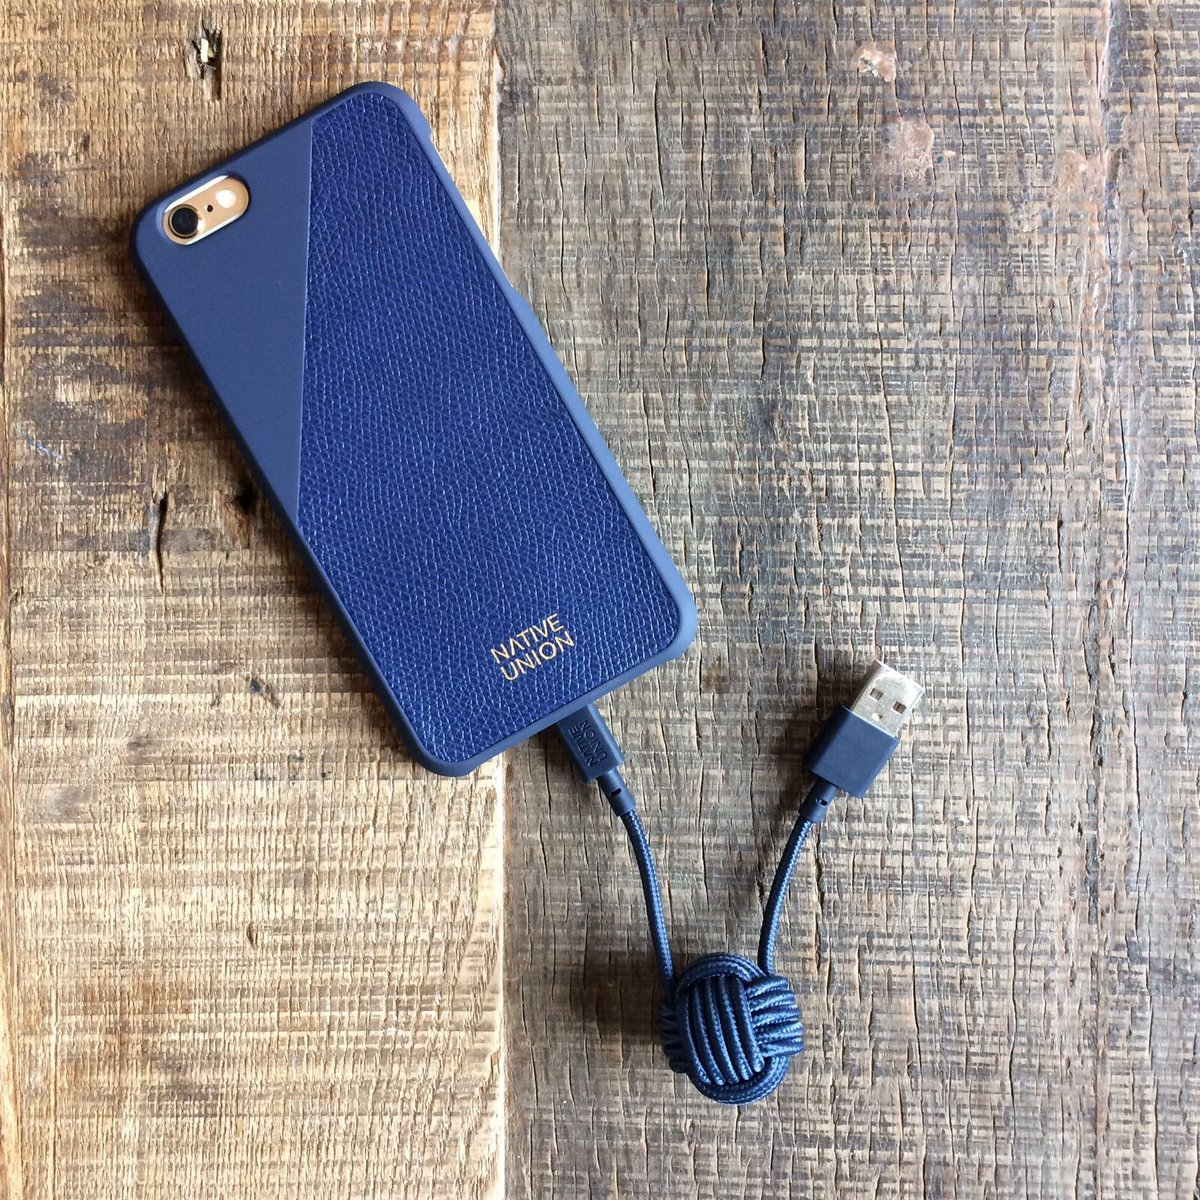 WIN an iPhone case &amp; charger from our friends @Native_Union! Simply RT &amp; Follow both of us to enter #Competition #WinItWednesday<br>http://pic.twitter.com/KIk13lKARh